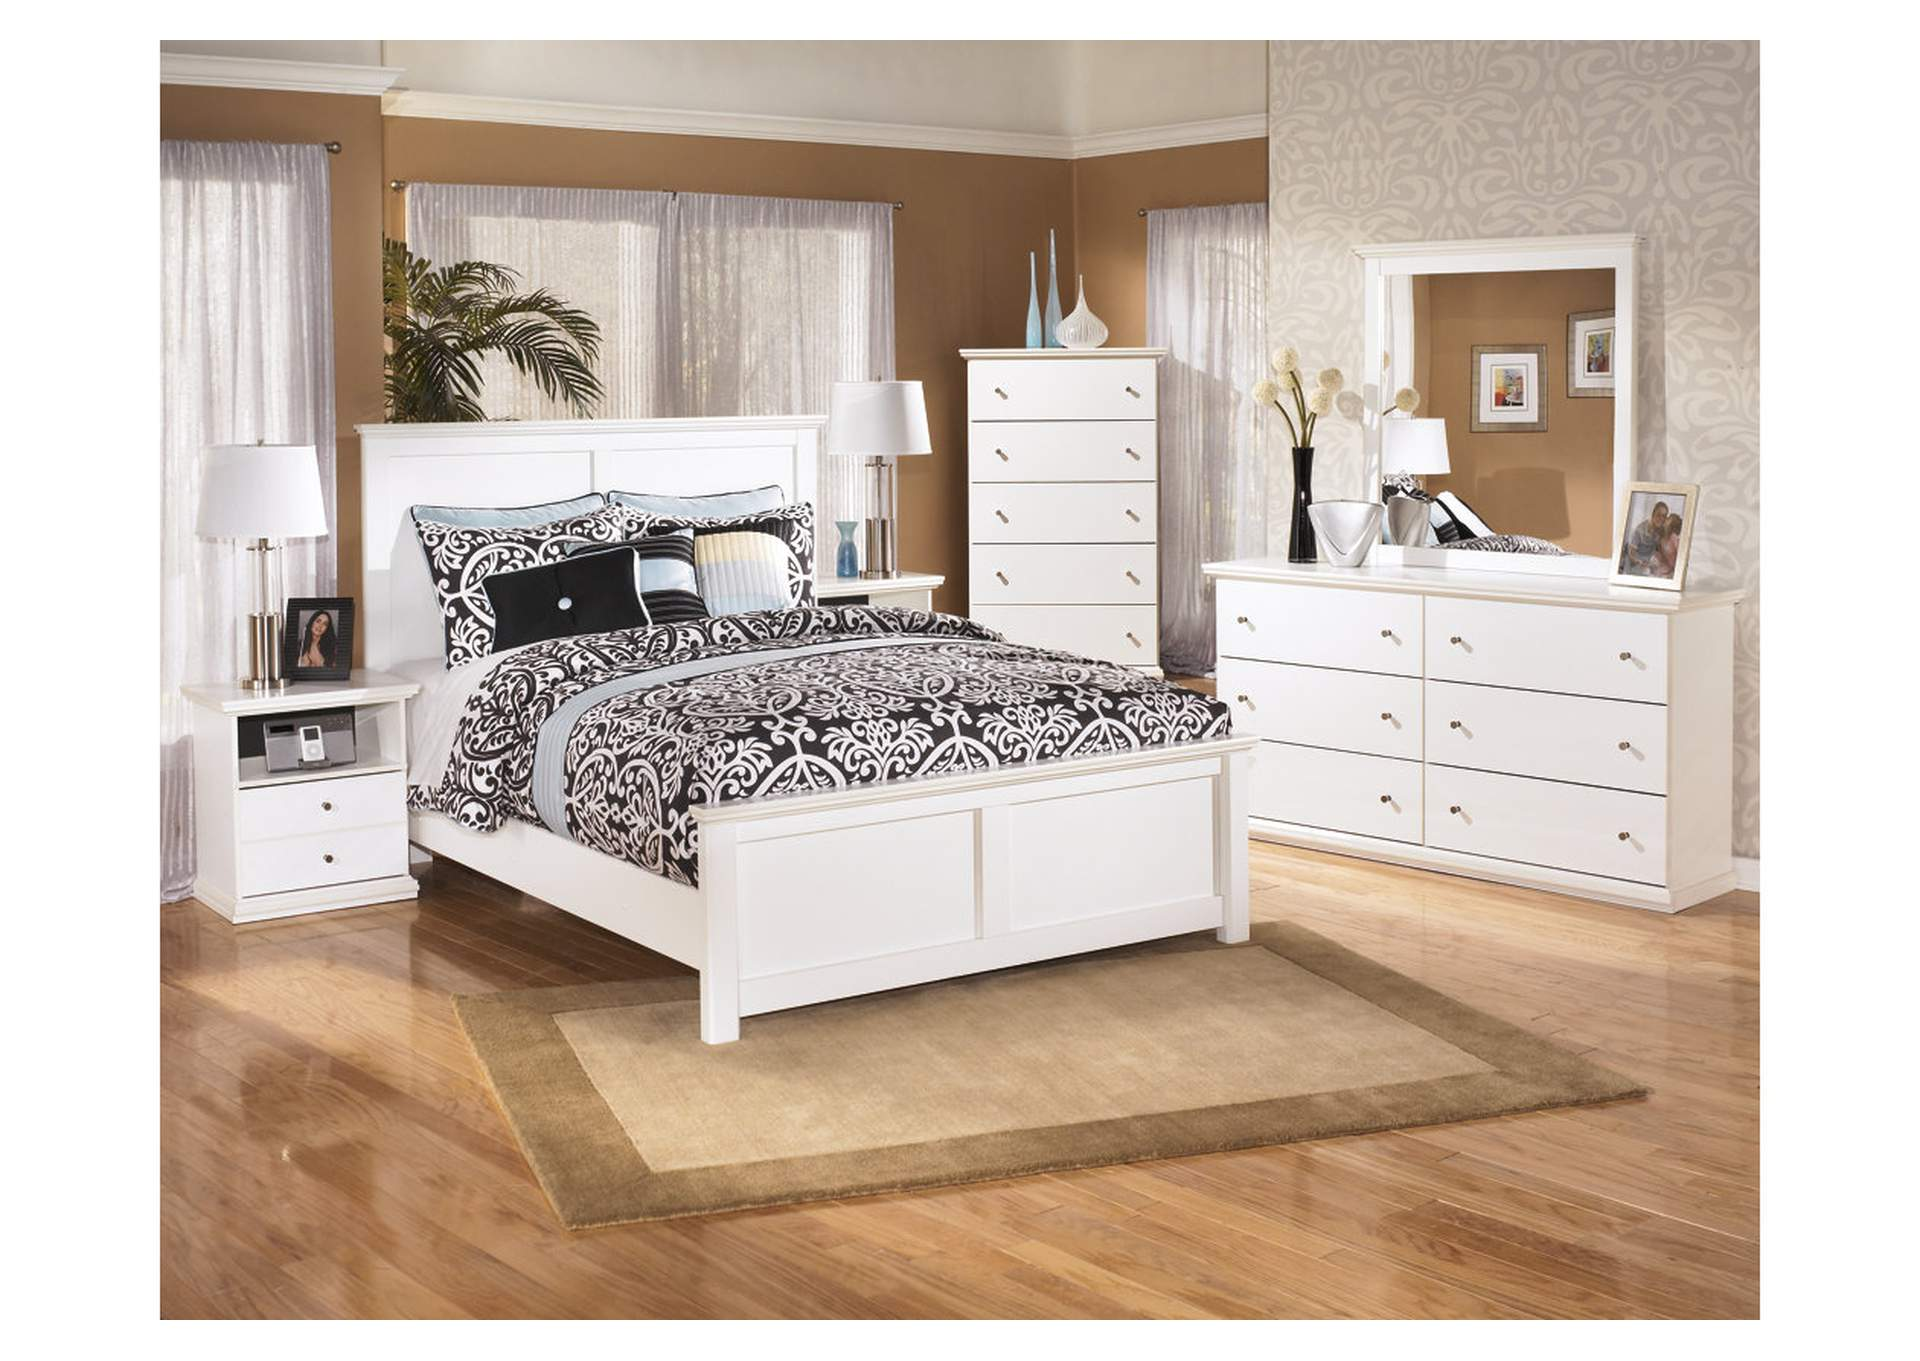 Bostwick Shoals Queen Panel Bed w/Dresser & Mirror,Signature Design by Ashley